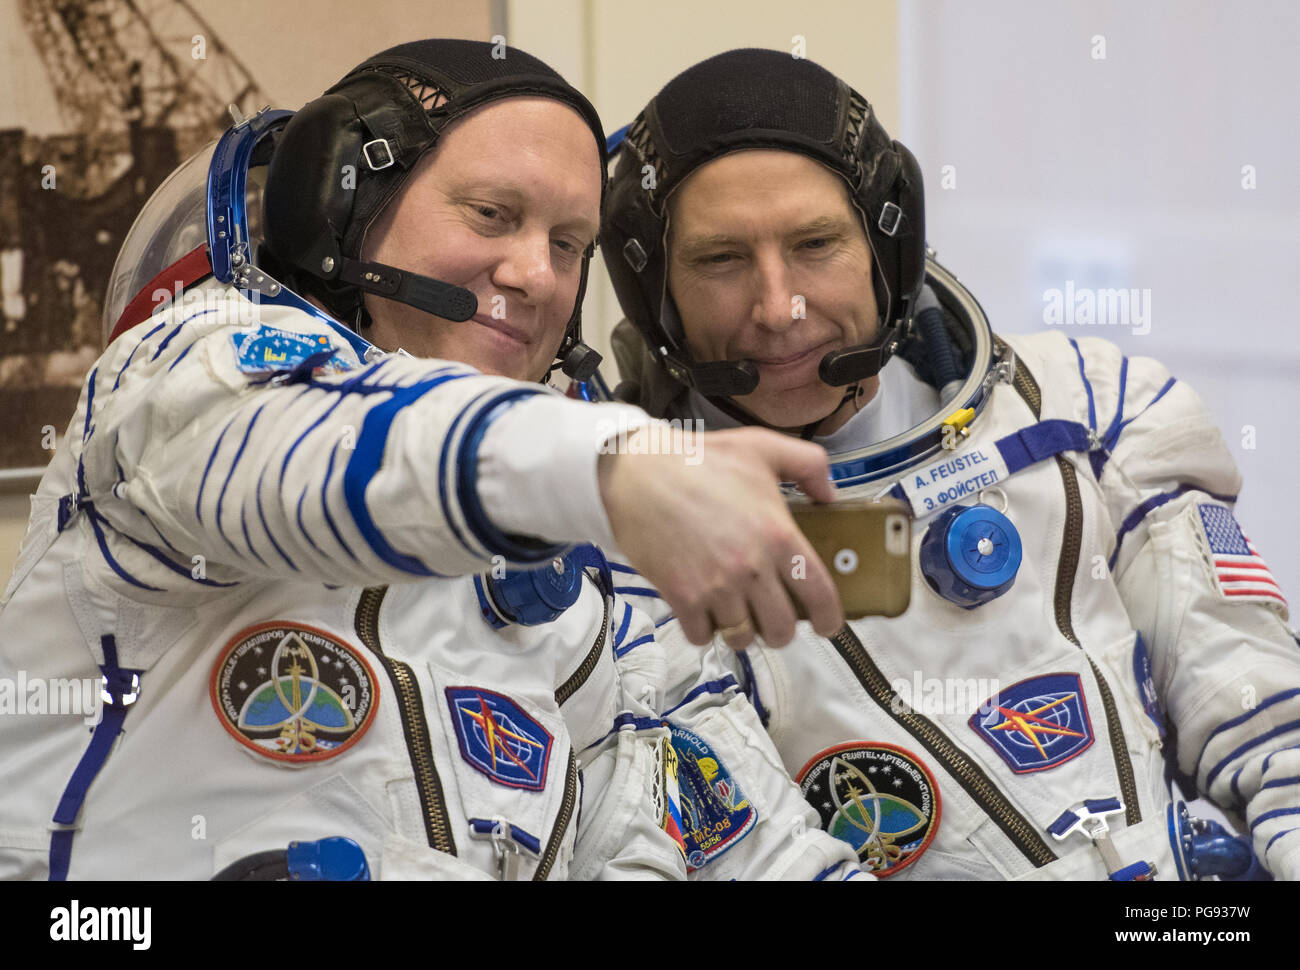 Expedition 55 Soyuz Commander Oleg Artemyev of Roscosmos, left, and flight engineer Drew Feustel of NASA take a selfie after having their Russian Sokol suits pressure checked in preparation for launch aboard the Soyuz MS-08 spacecraft, Wednesday, March 21, 2018 at the Baikonur Cosmodrome in Kazakhstan. Artemyev, Feustel, and flight engineer Ricky Arnold of NASA launched aboard the Soyuz MS-08 spacecraft at 1:44 p.m. Eastern time (11:44 p.m. Baikonur time) on March 21 to begin their journey to the International Space Station. - Stock Image